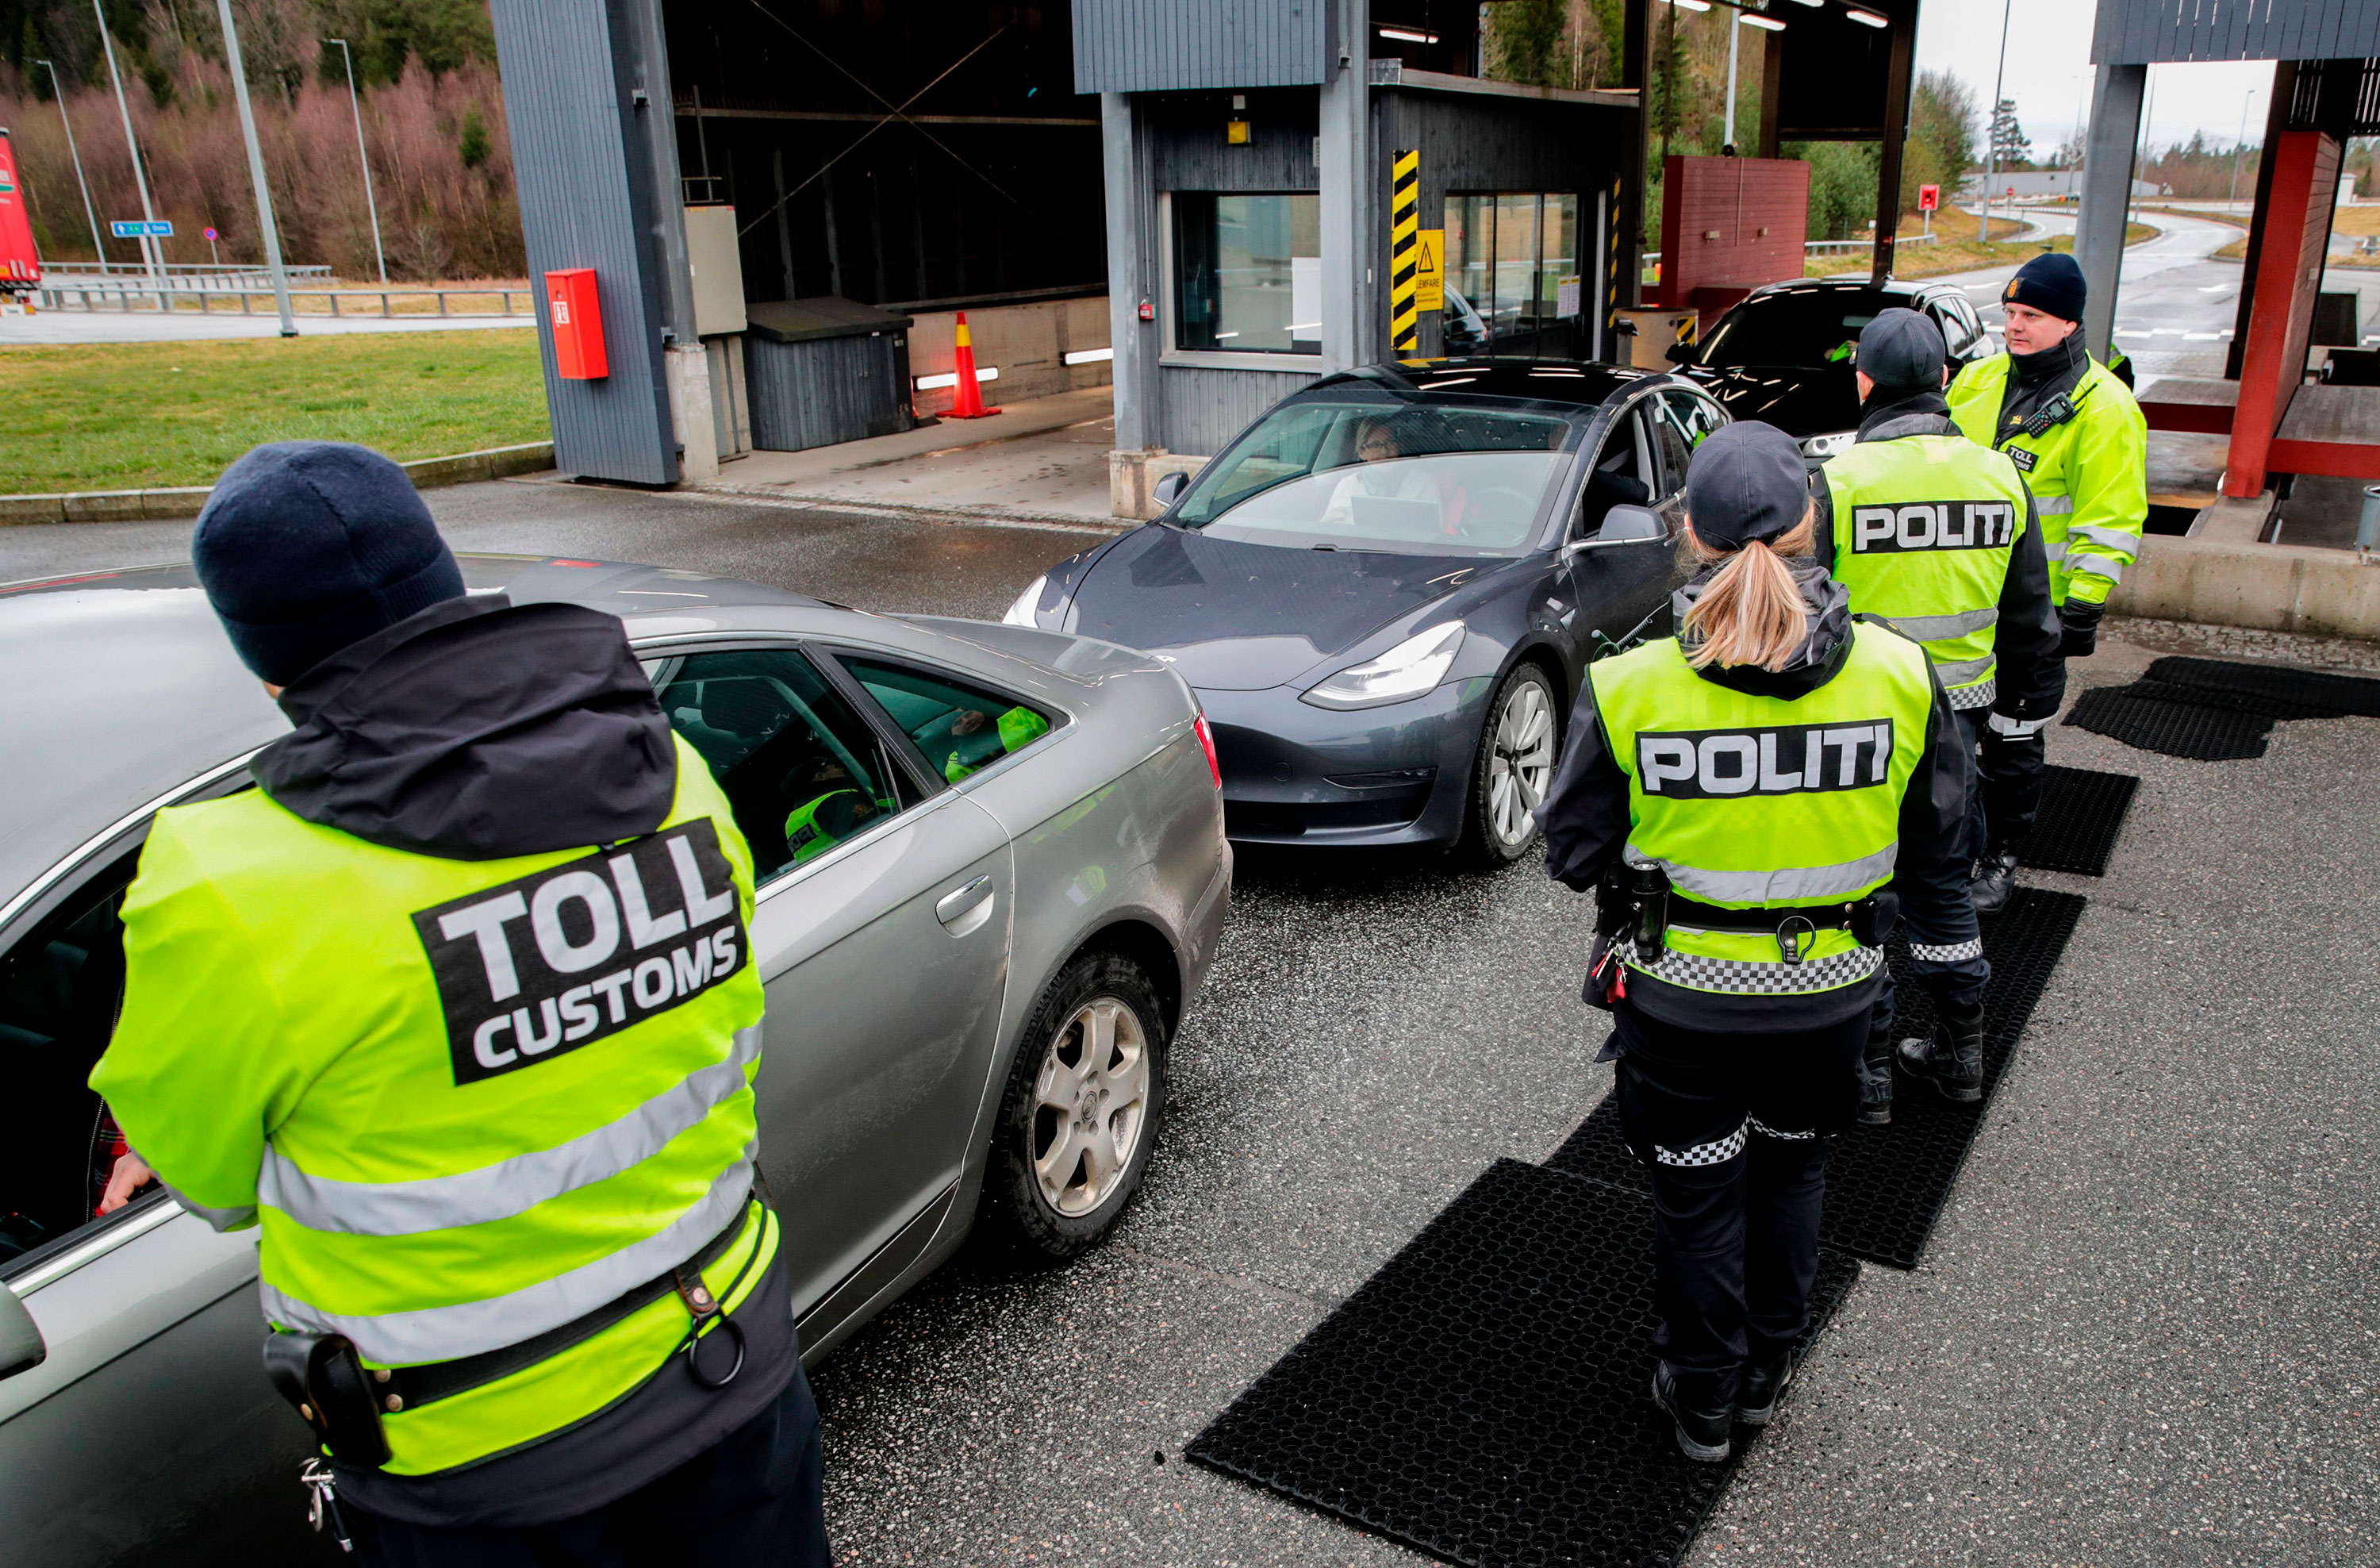 Customs officers and policemen check drivers at the border between Norway and Sweden in Swinesund on March 16, 2020.